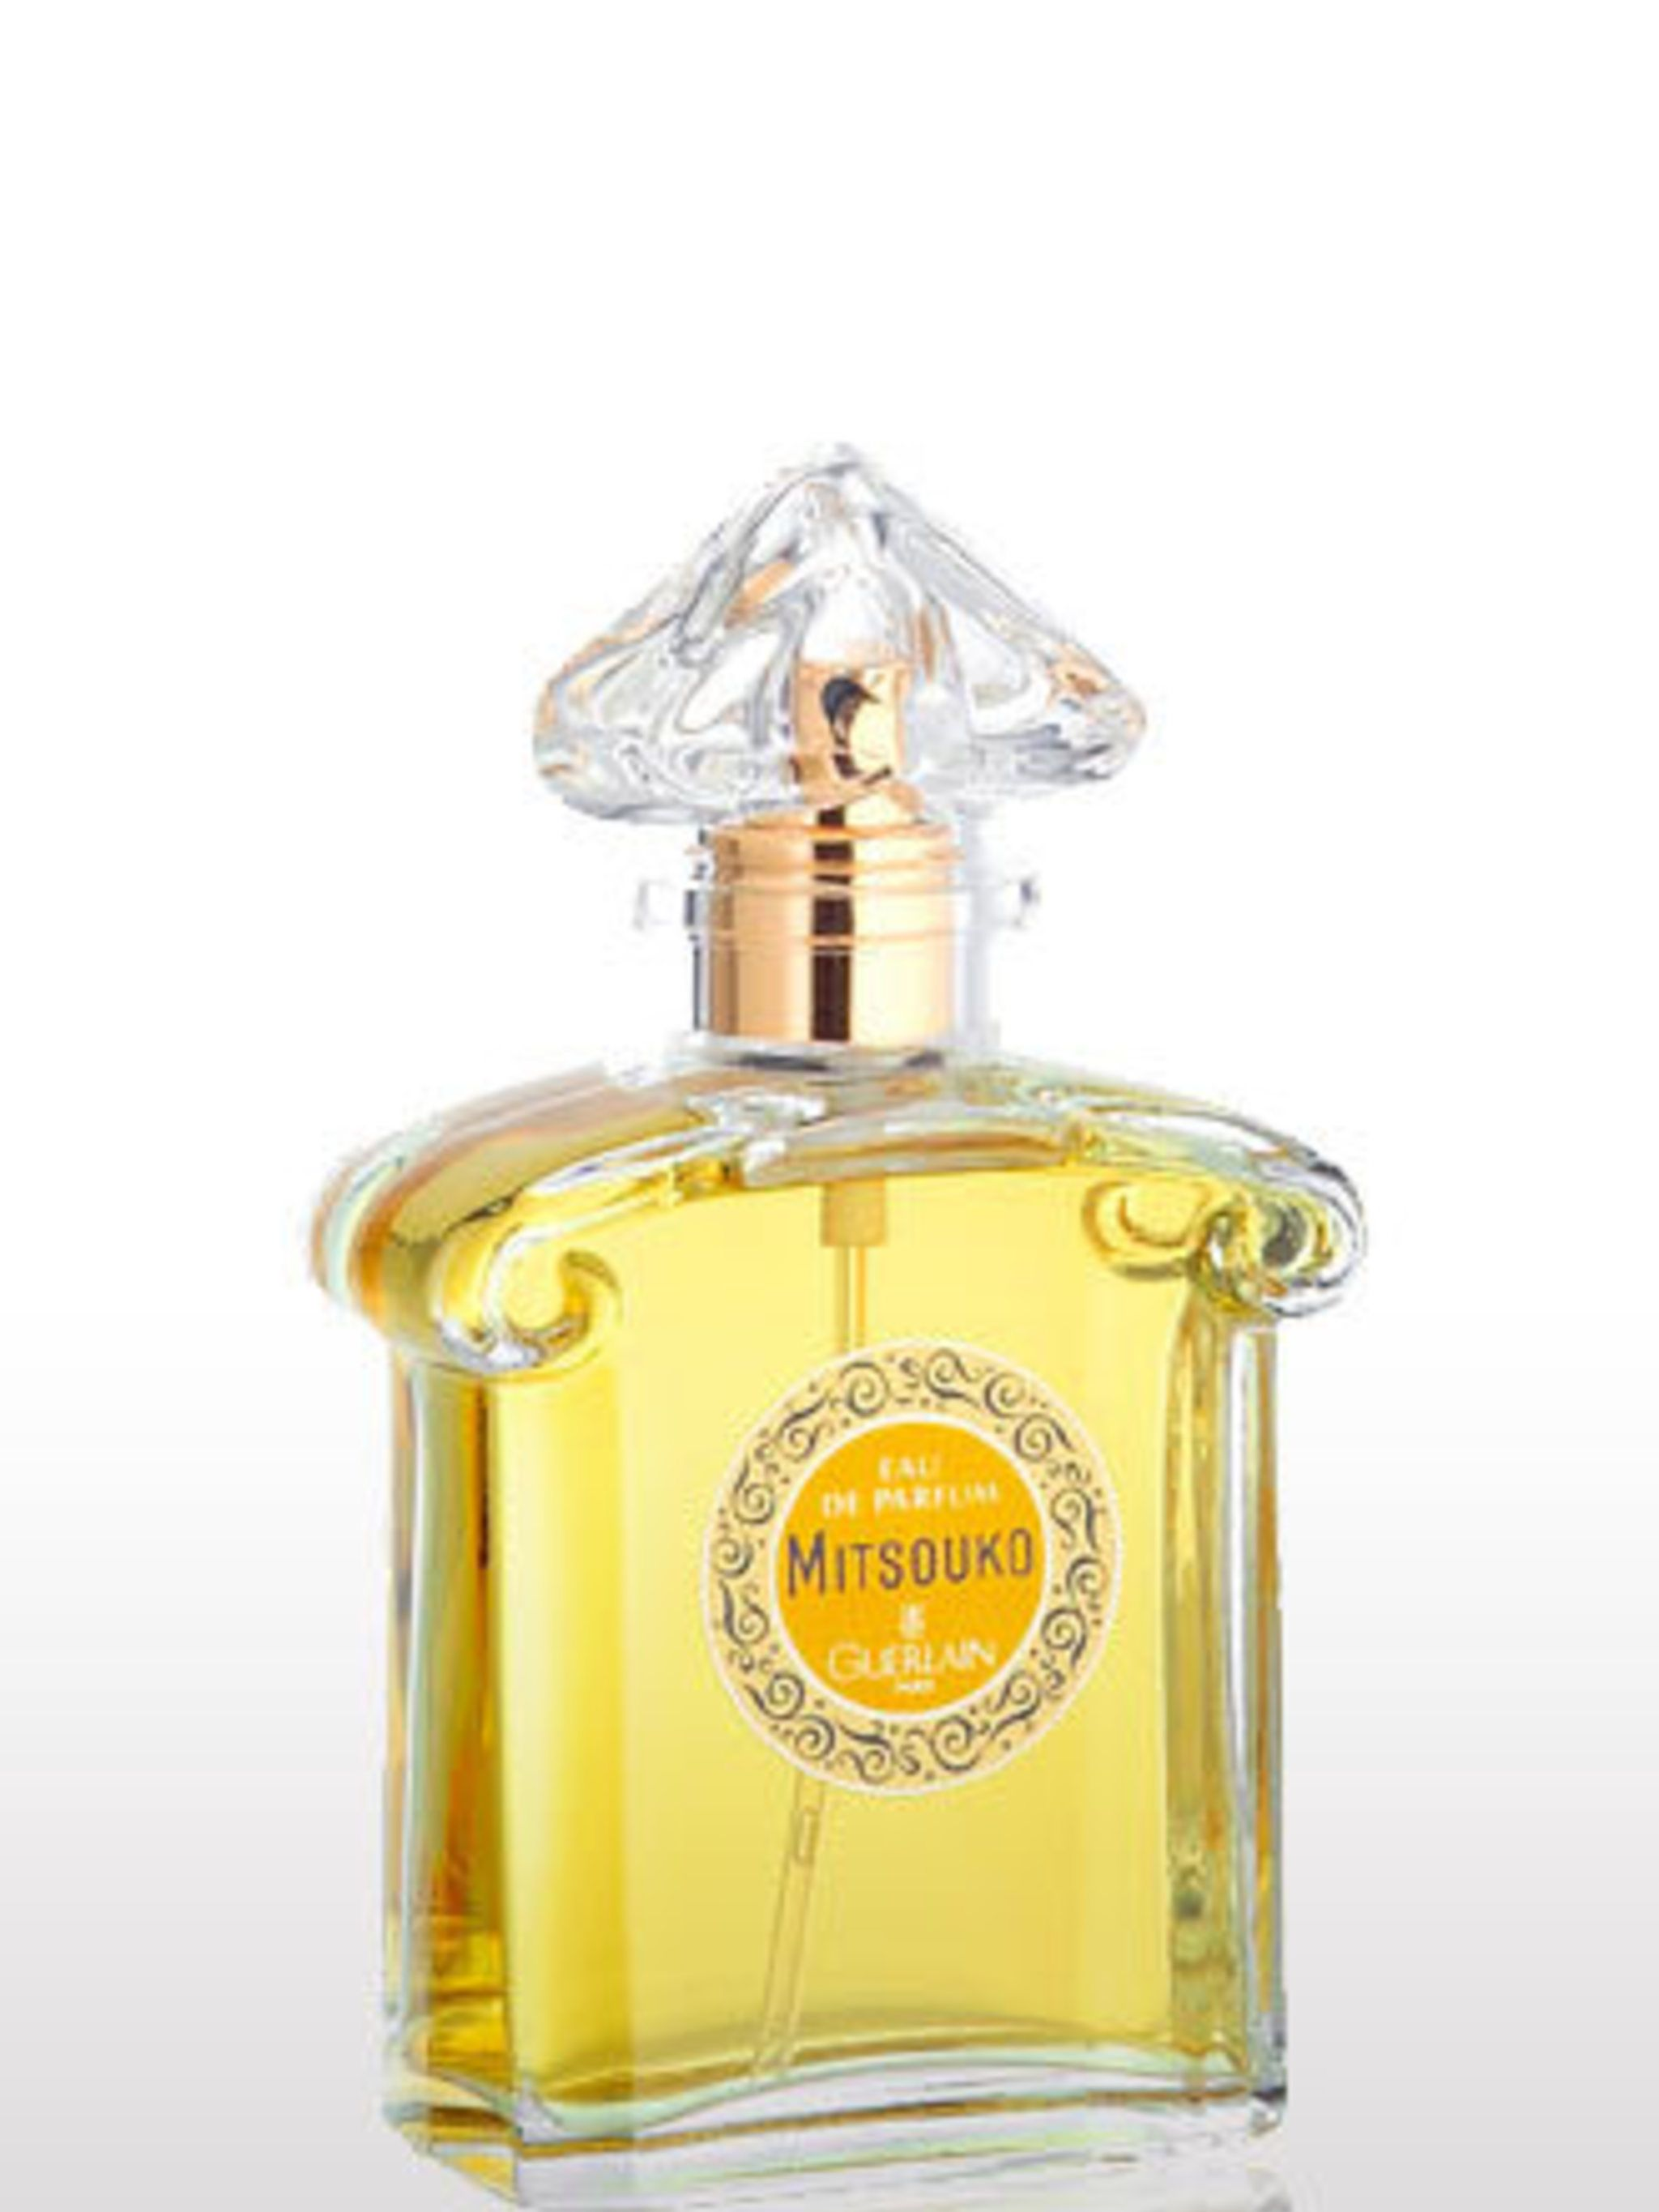 "<p>'I've always wanted to be able to wear this fragrance. It's mysterious, temperamental, but impeccably put together. The kind of woman I one day hope to be, I suppose.' Emma Smith, Beauty Director.</p><p>Guerlain Mitsouko, from £46.50 EDT at <a href=""ht"